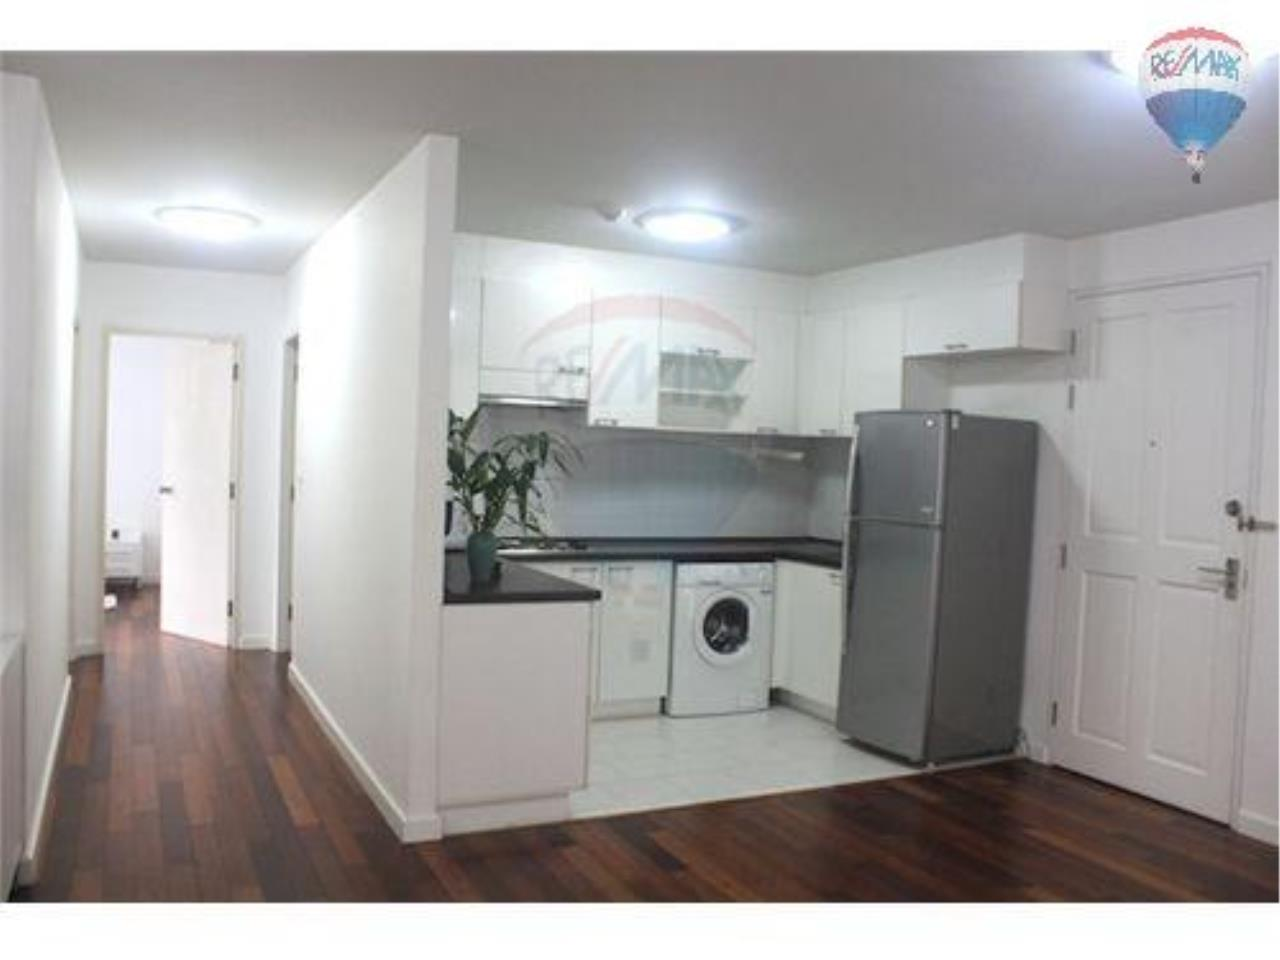 RE/MAX Properties Agency's 2 Bedroom Apartment- Sukhumvit Soi 49 5